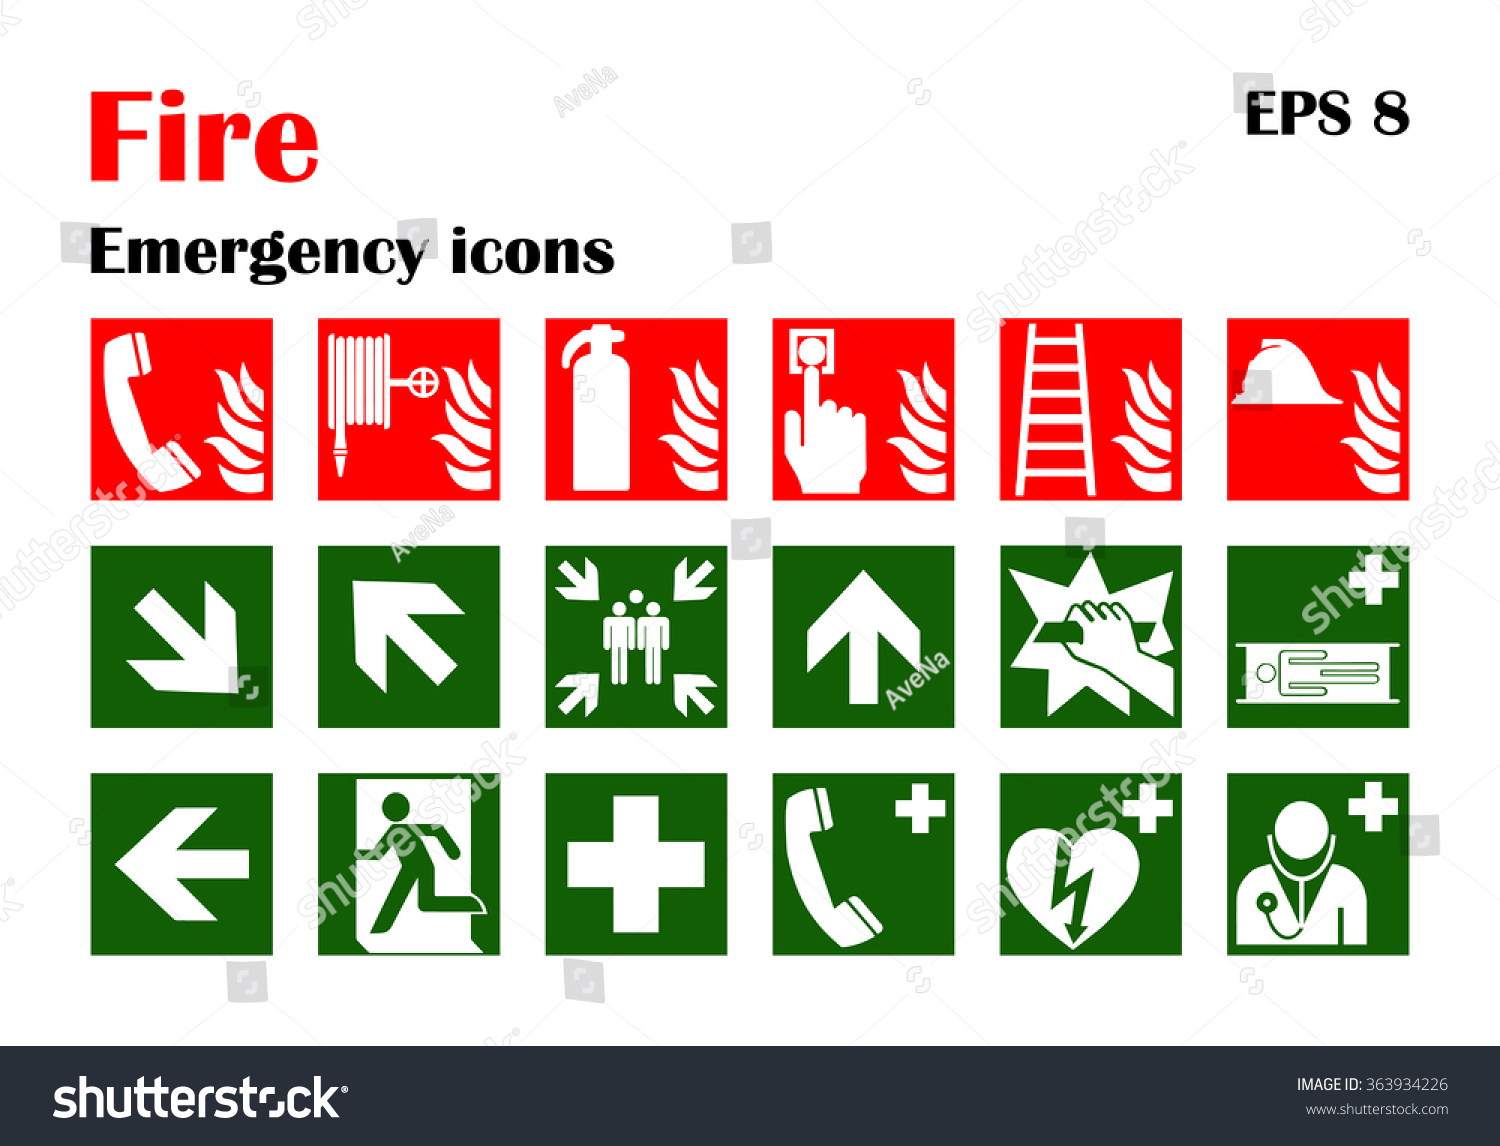 Vector fire emergency icons signs evacuations stock vector vector fire emergency icons signs of evacuations set of firefighter warning evacuation emergency signs biocorpaavc Gallery